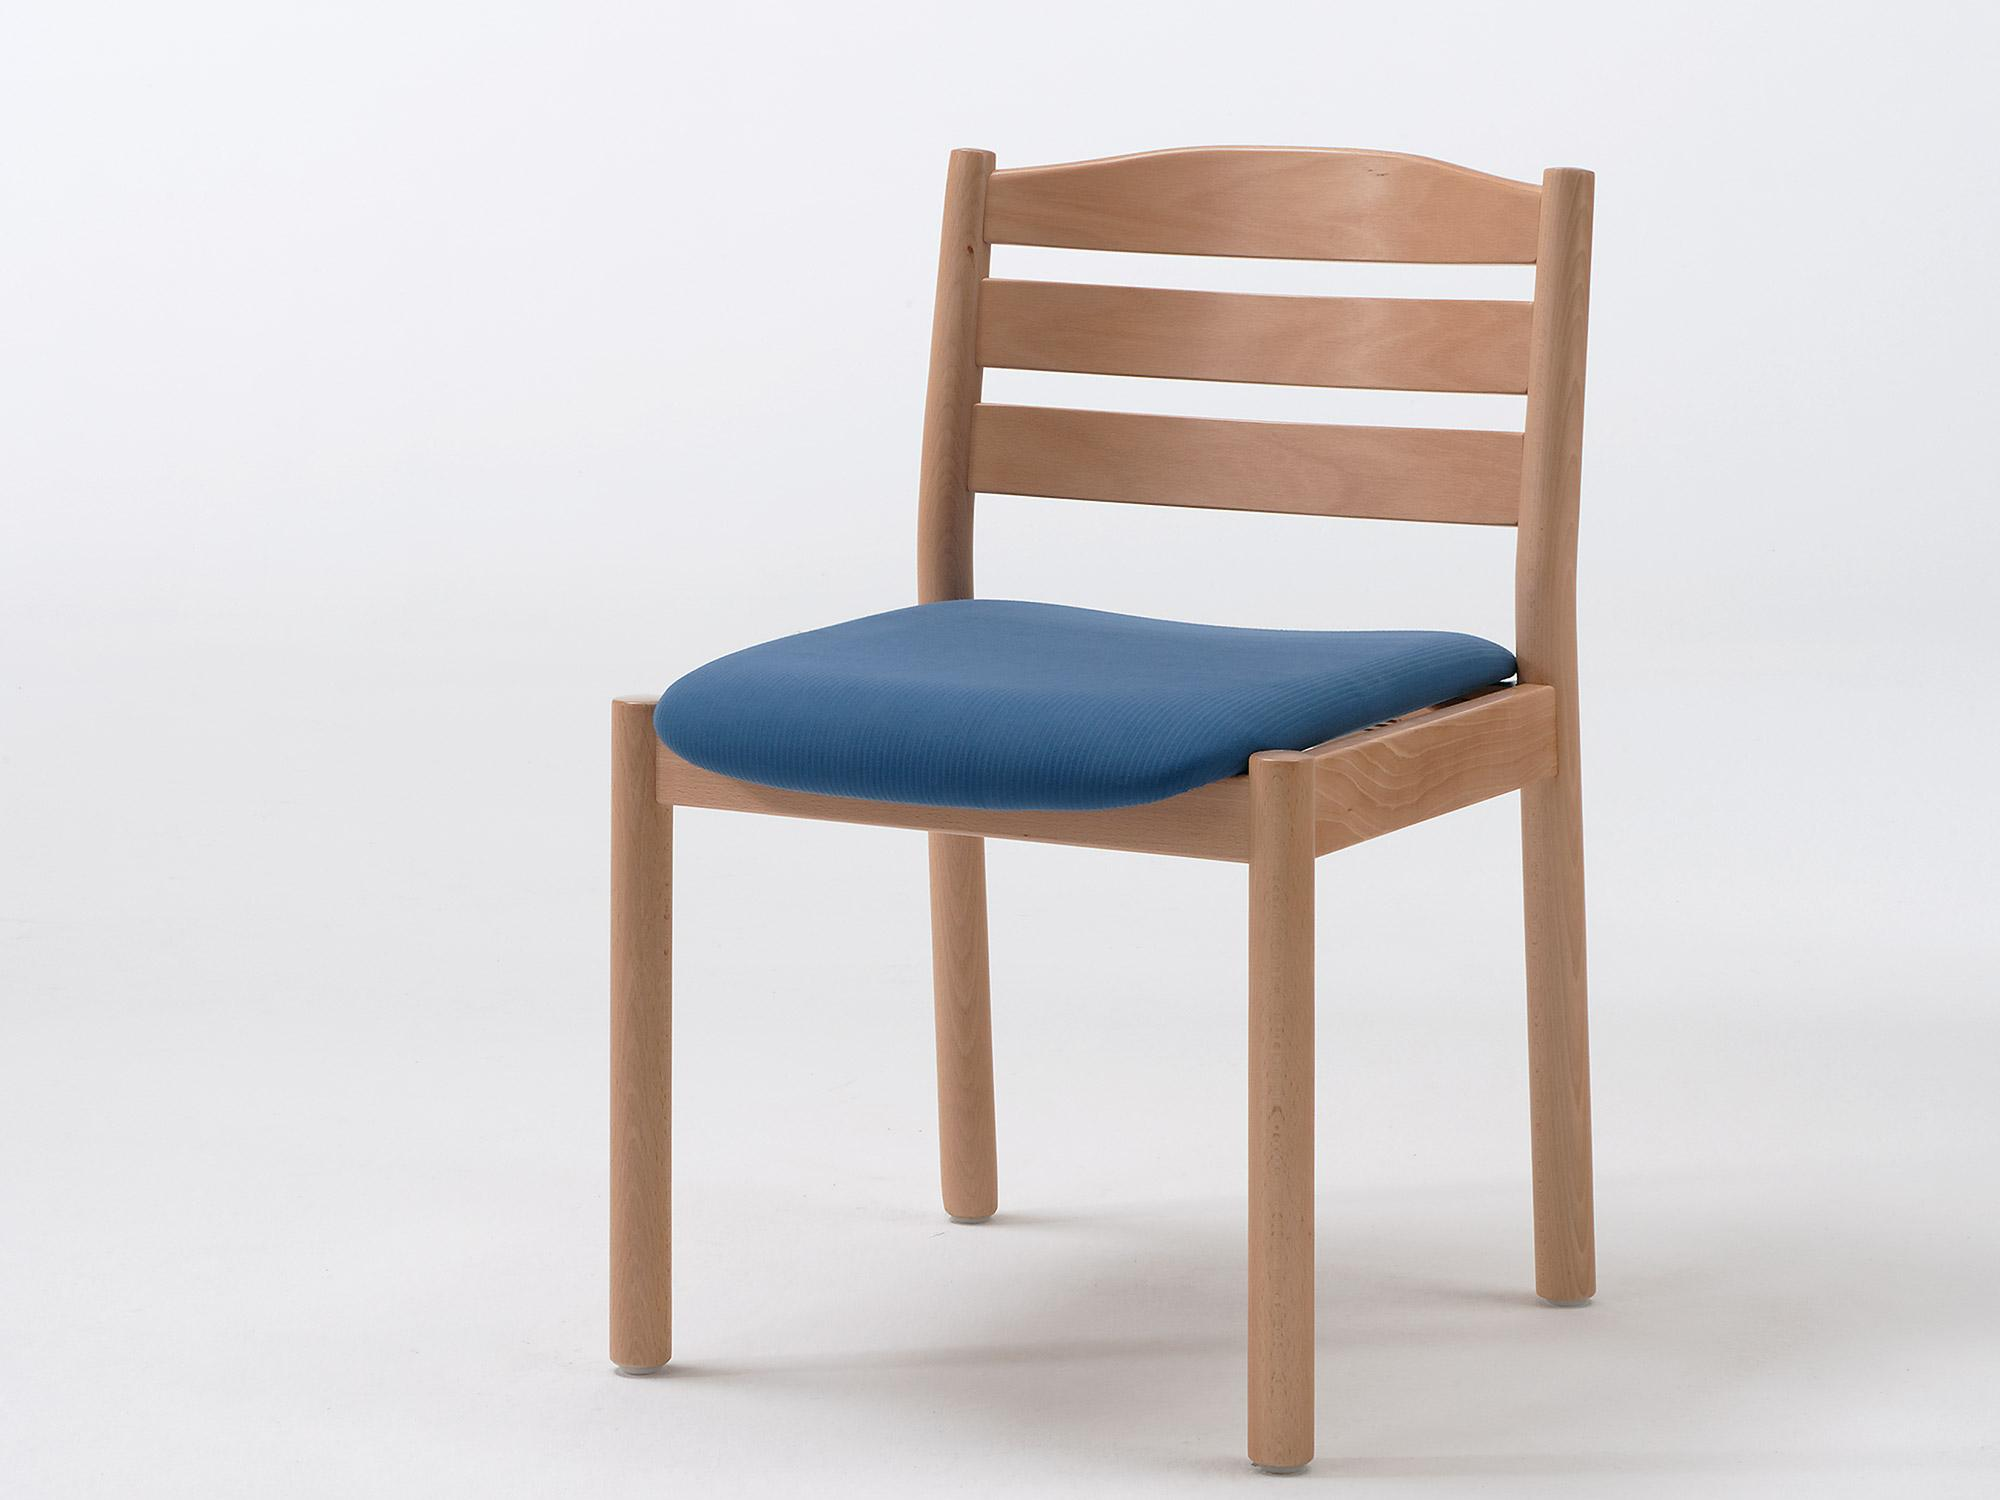 The Primo model as a chair with non-upholstered back